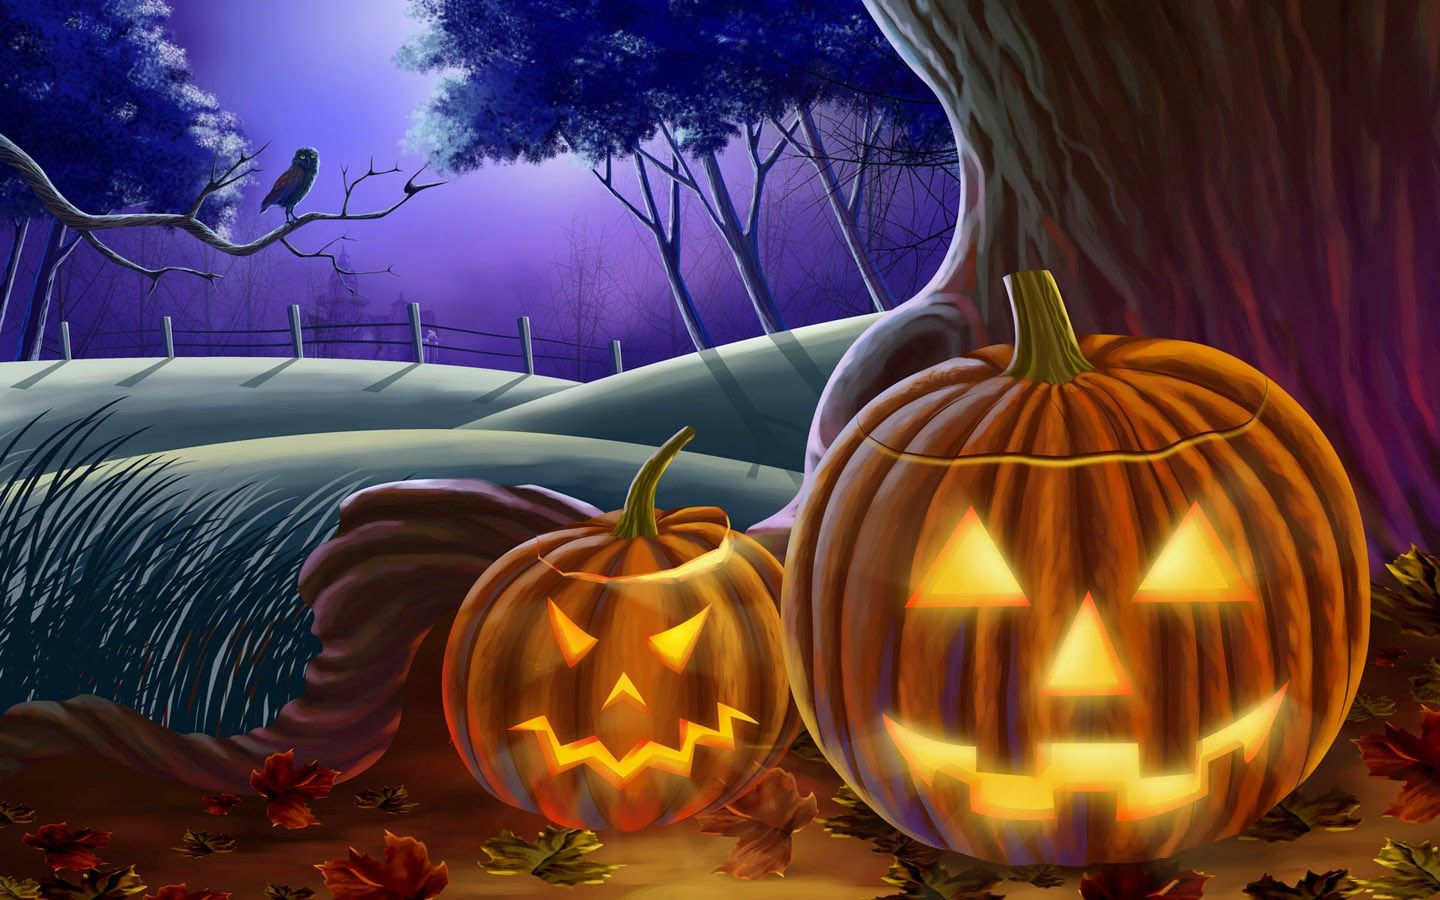 45 Halloween Wallpapers For Your Desktop Most Beautiful Places In The World Download Free Halloween Desktop Wallpaper Halloween Images Halloween Wallpaper